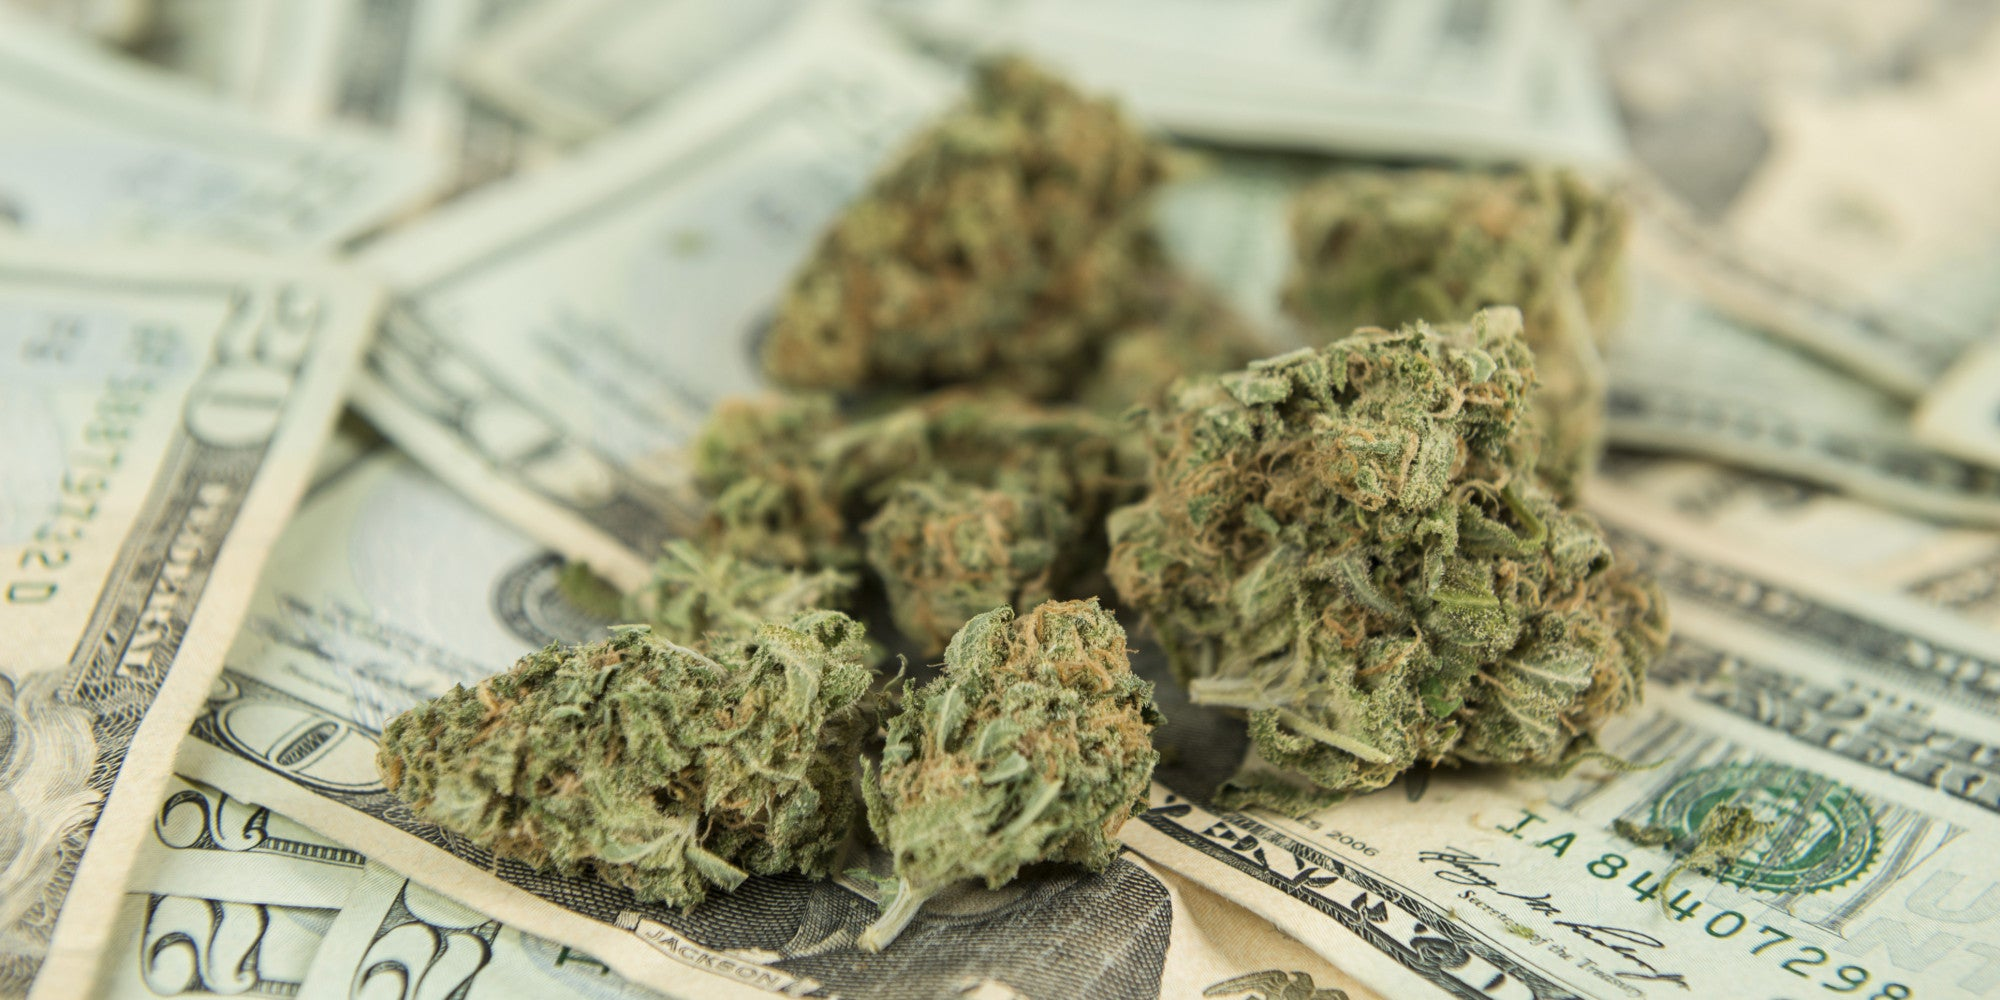 Study: Legalizing marijuana nationally could generate more than $132 billion in tax revenue and 1 million jobs